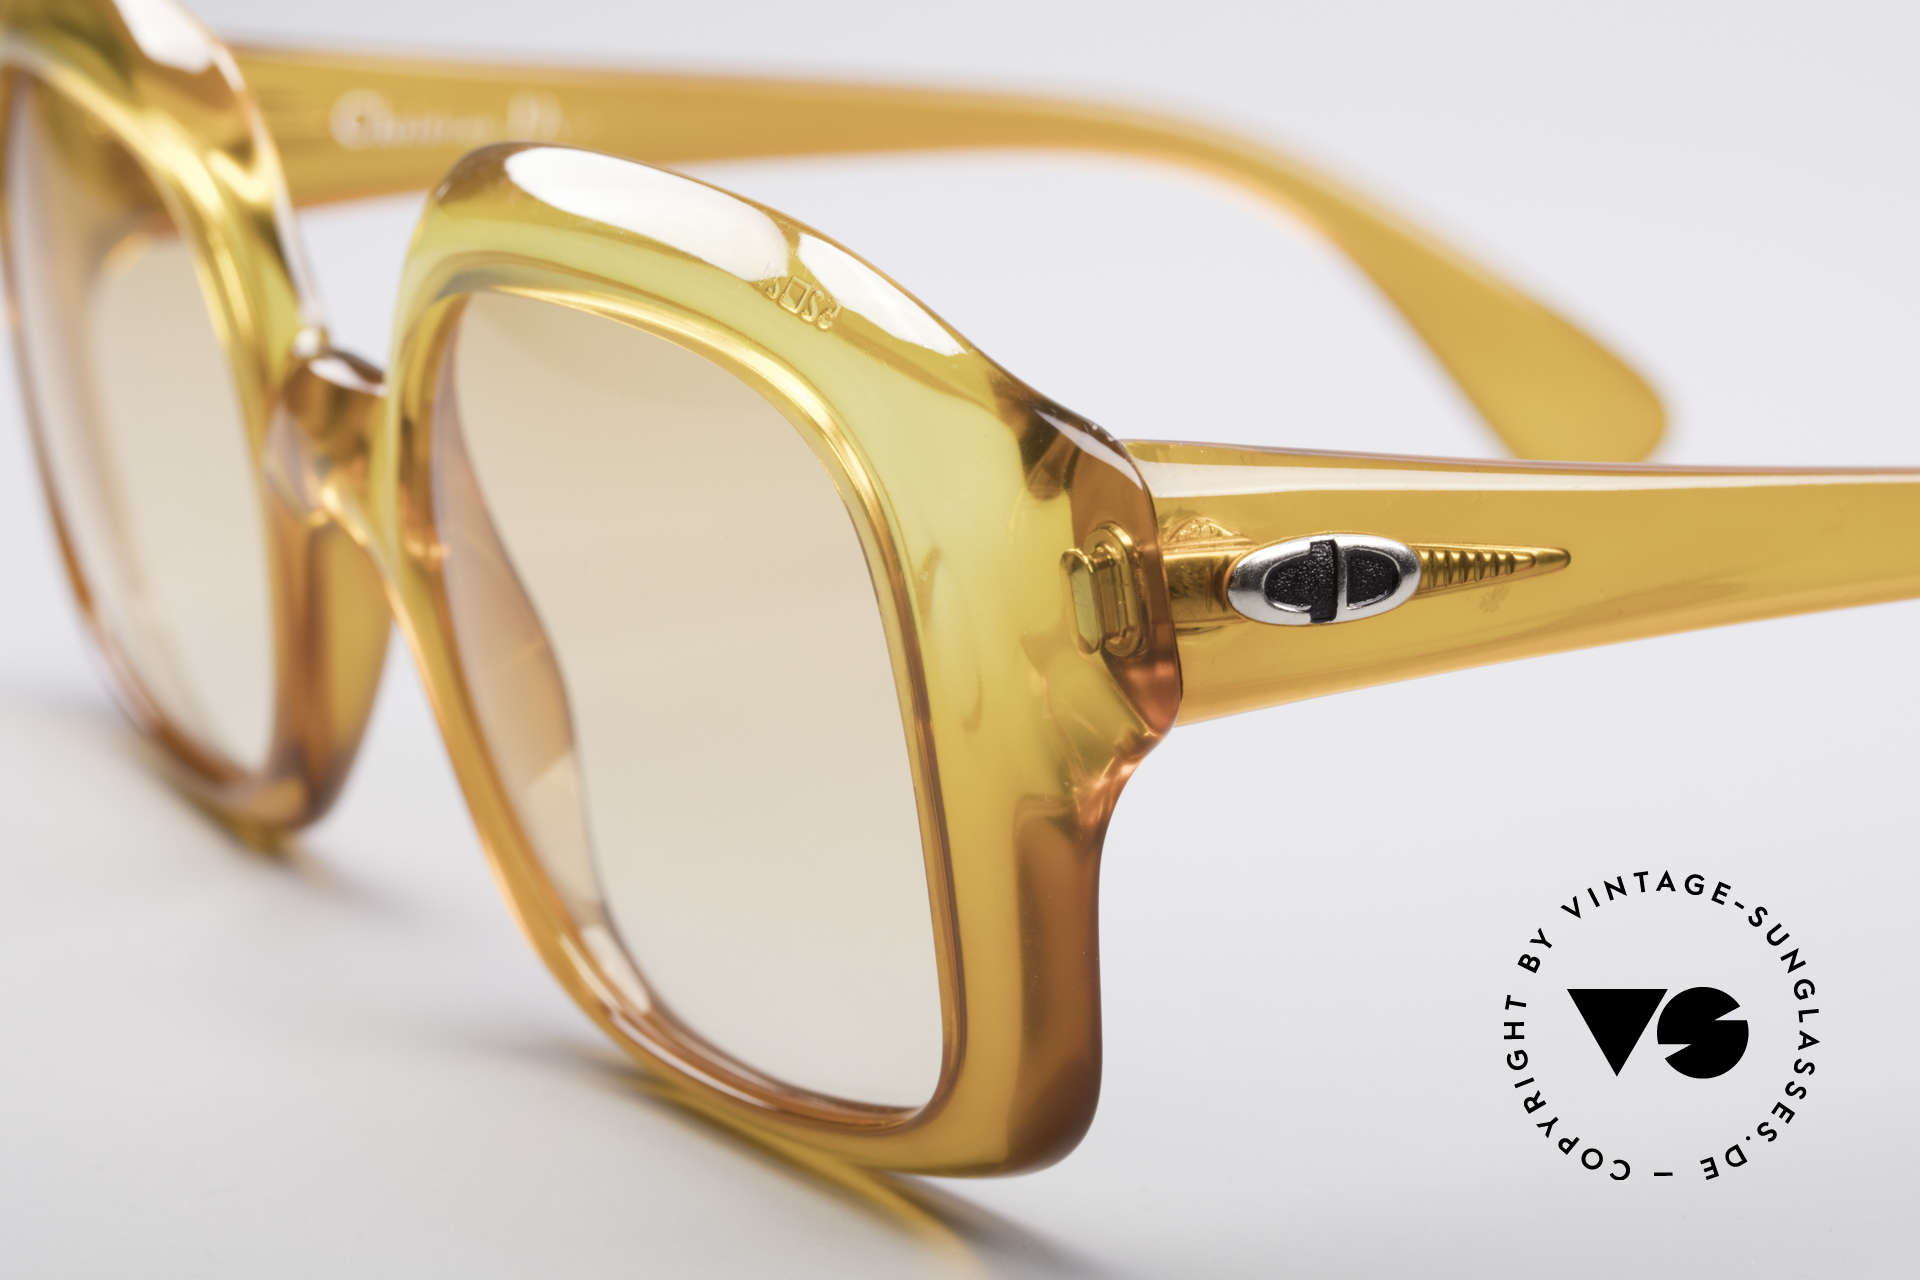 Christian Dior 1206 70's Vintage Frame, made of unbelievable Optyl material with 'mystic effect', Made for Women